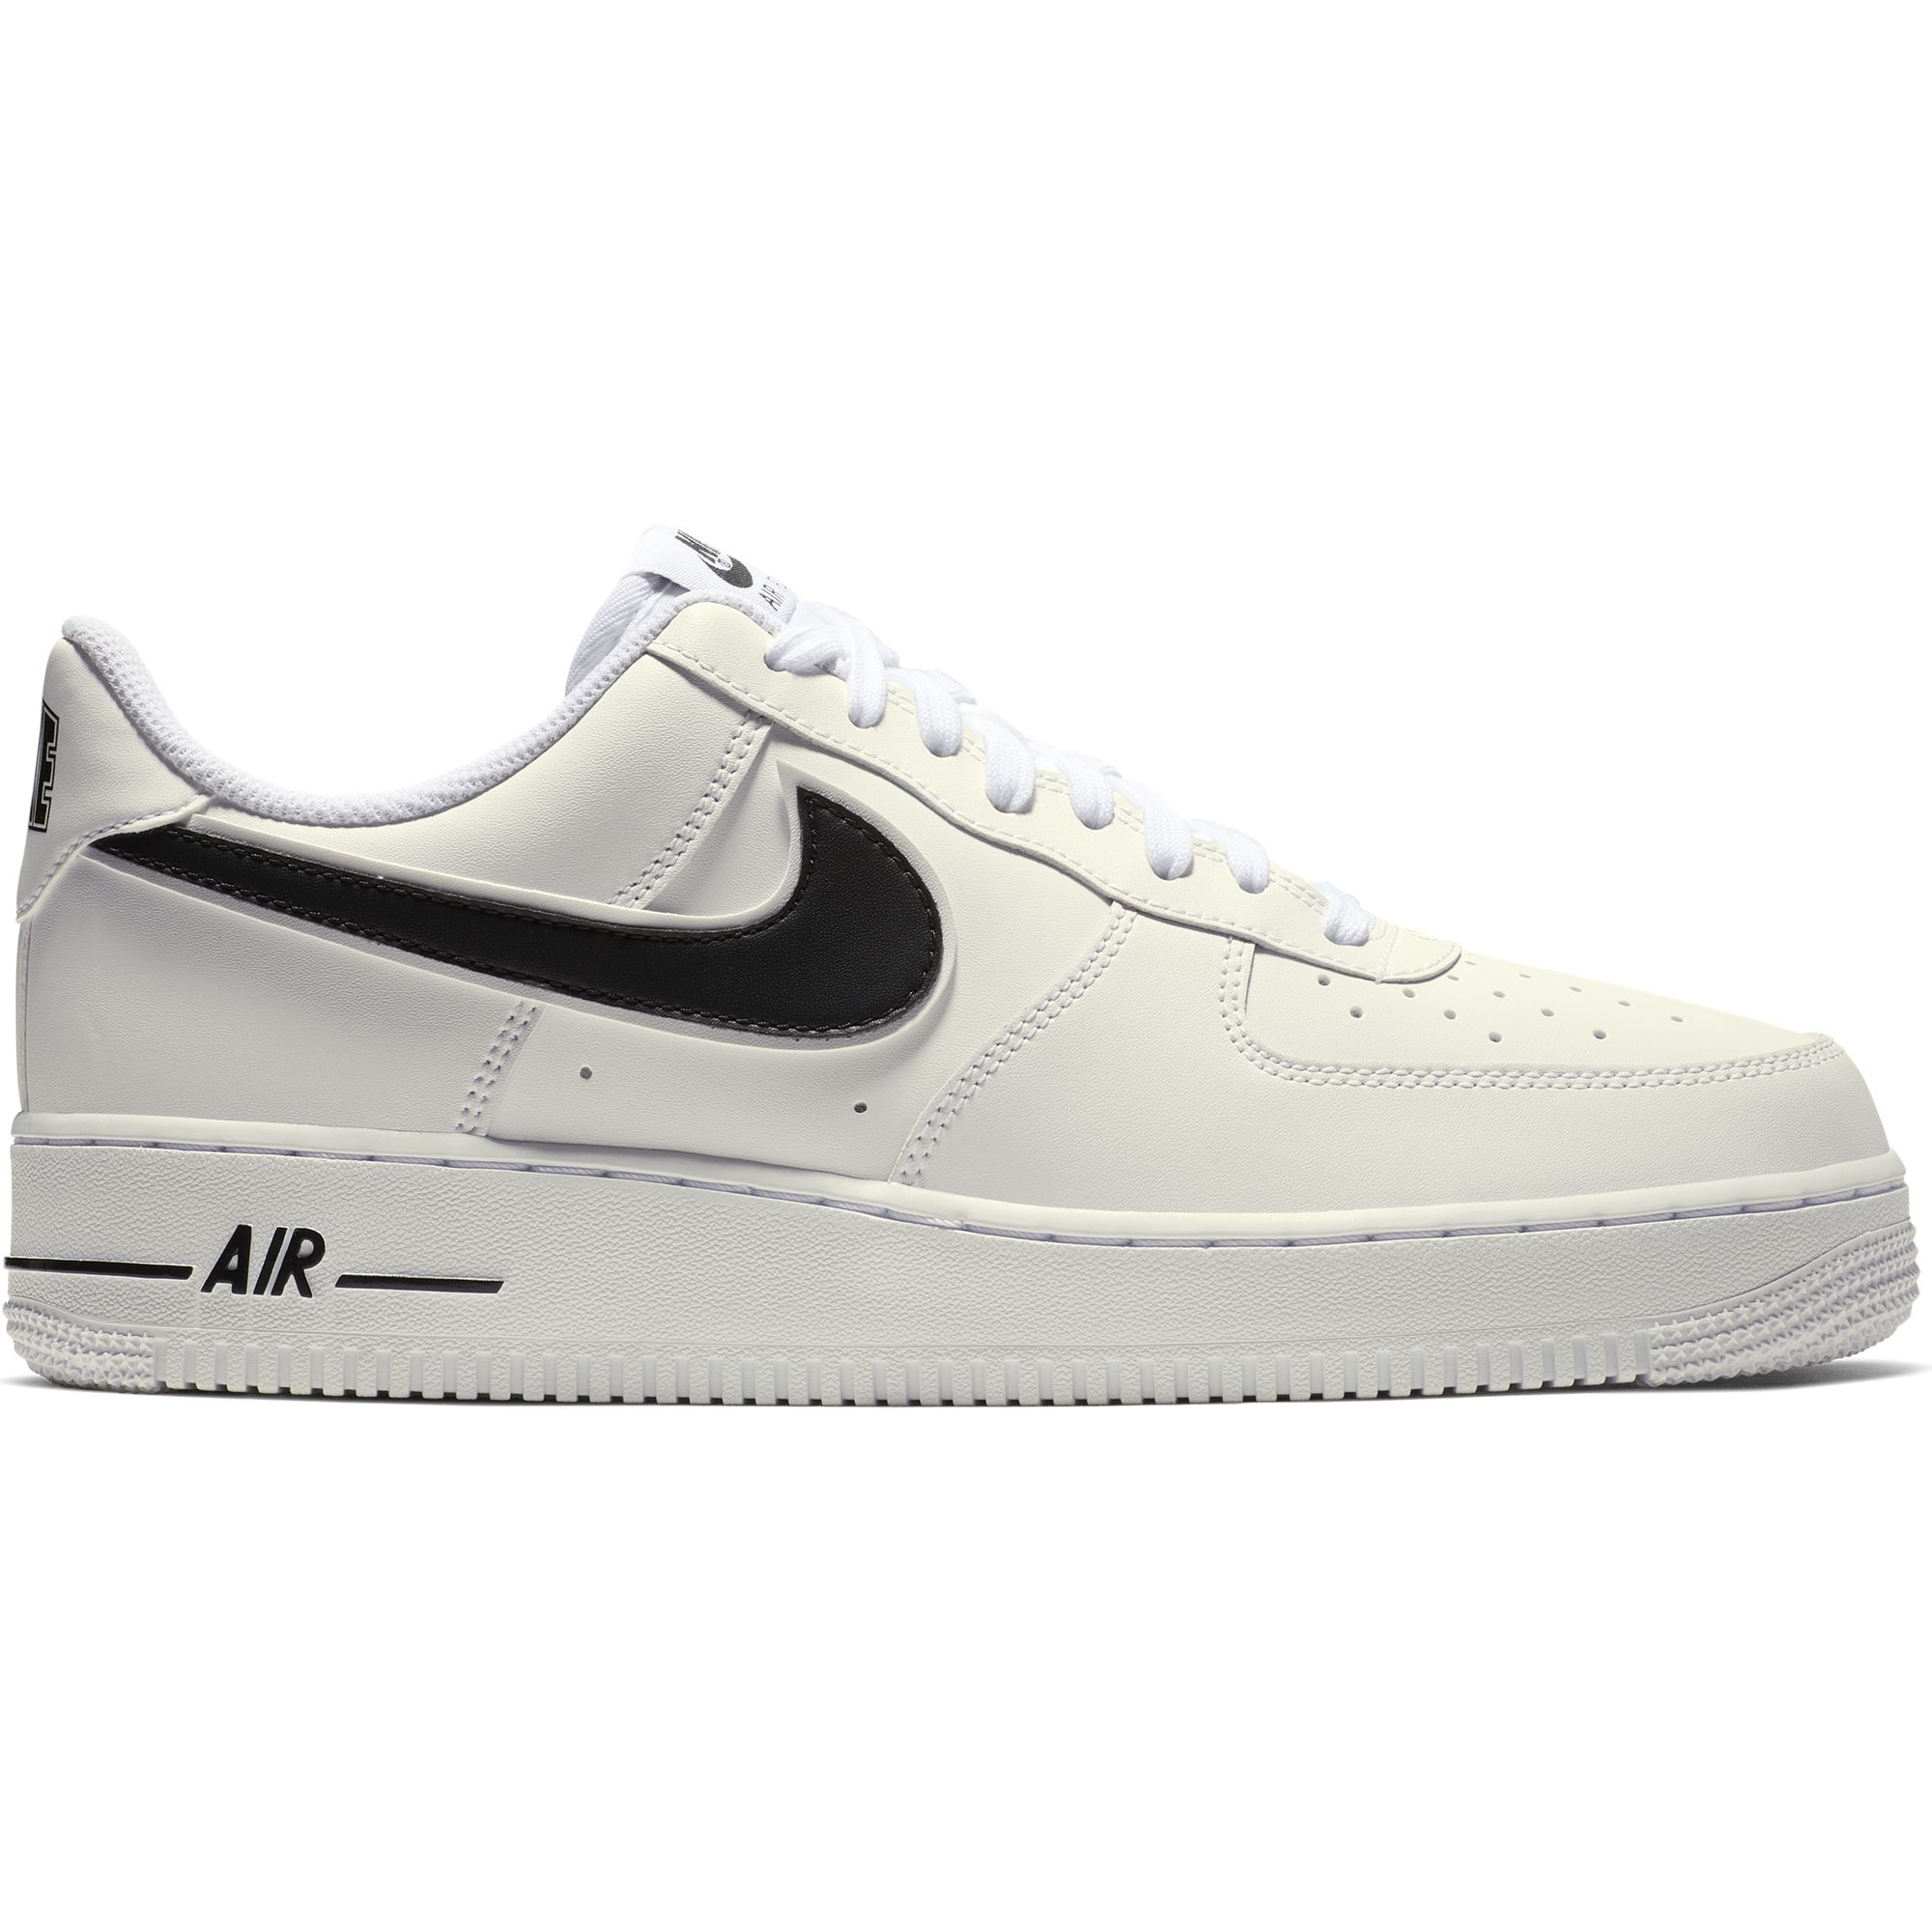 cheap for discount af7f8 6ca31 Details about Nike Men s AIR FORCE 1  07 3 Low-cut Sneakers, White Black